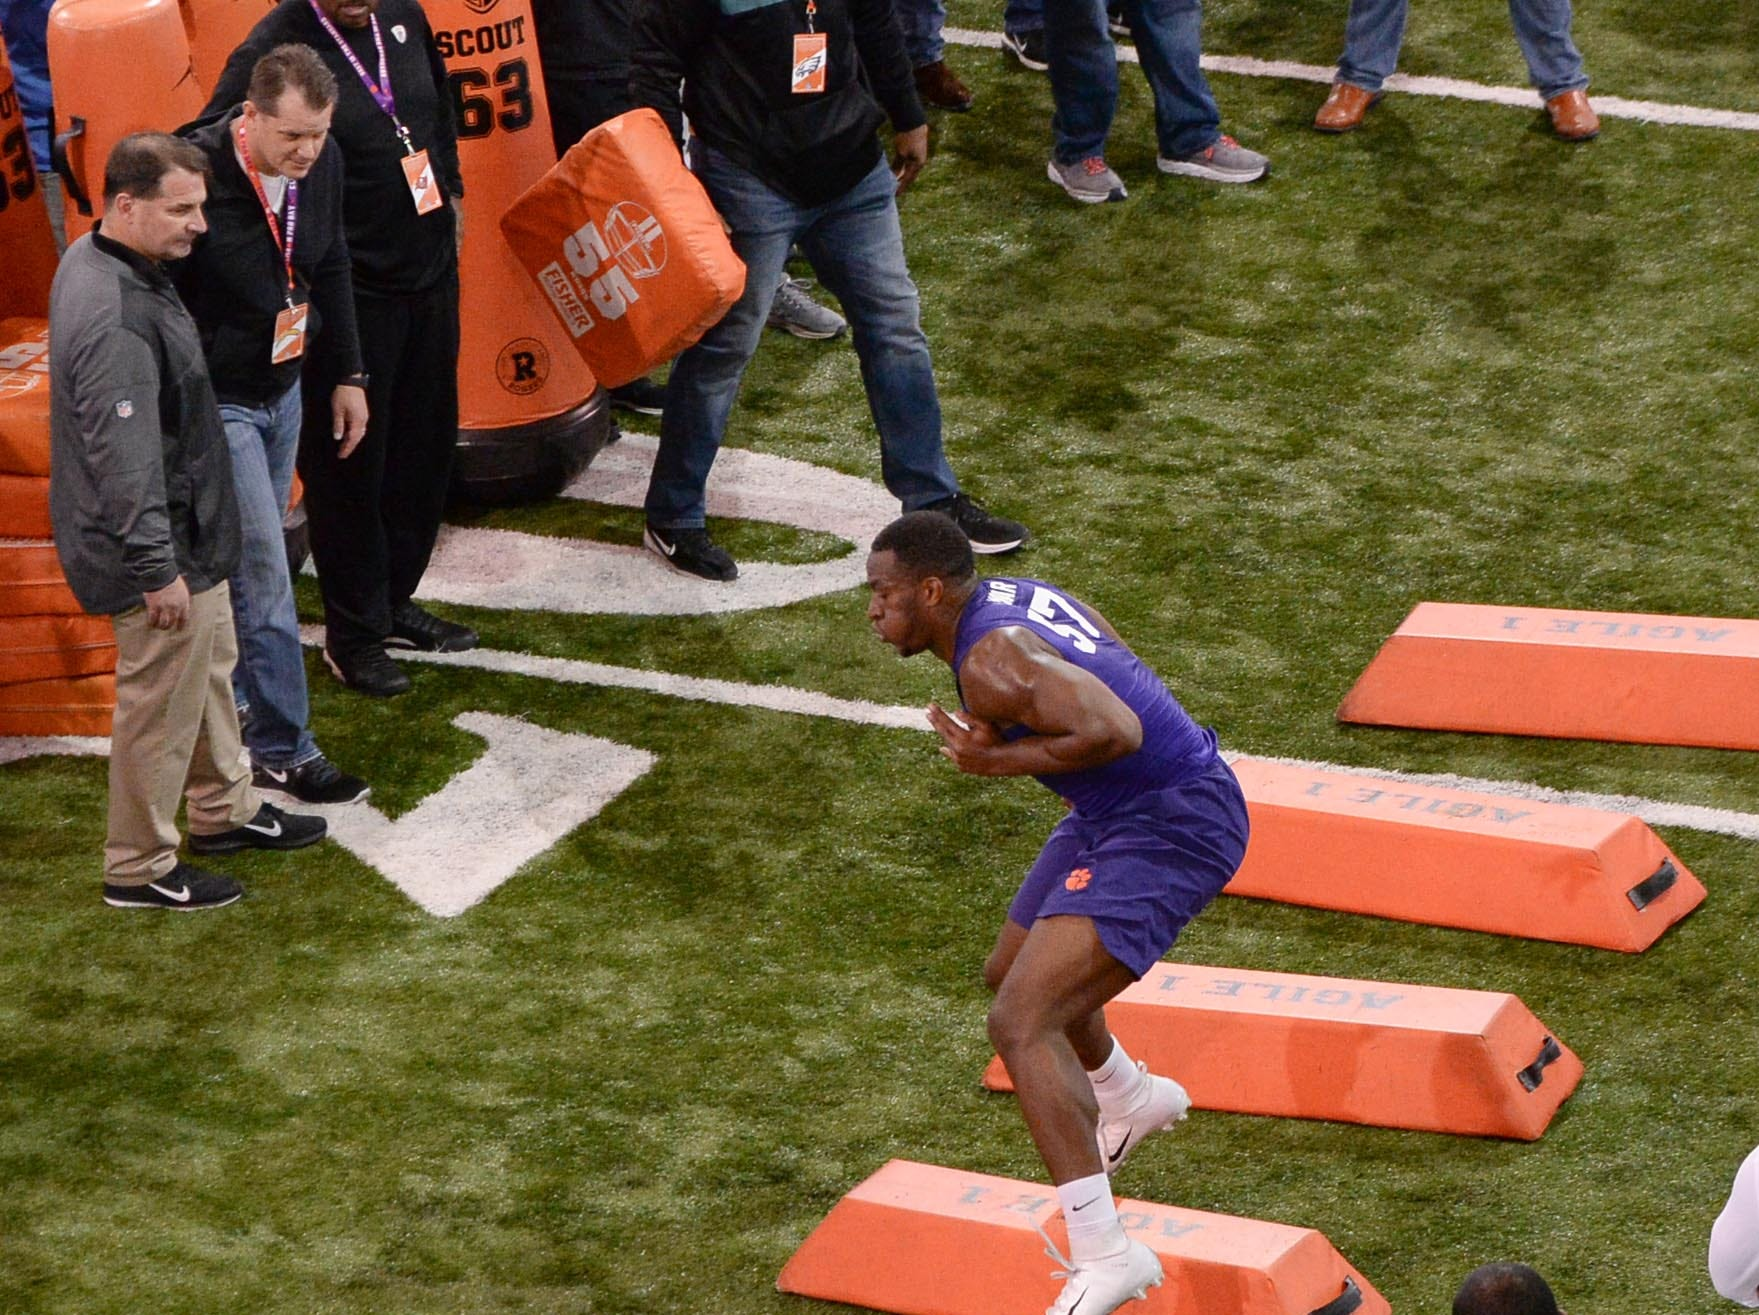 Defender Tre Lamar III runs during Clemson pro day at the Poe Indoor Facility in Clemson Thursday, March 14, 2019.